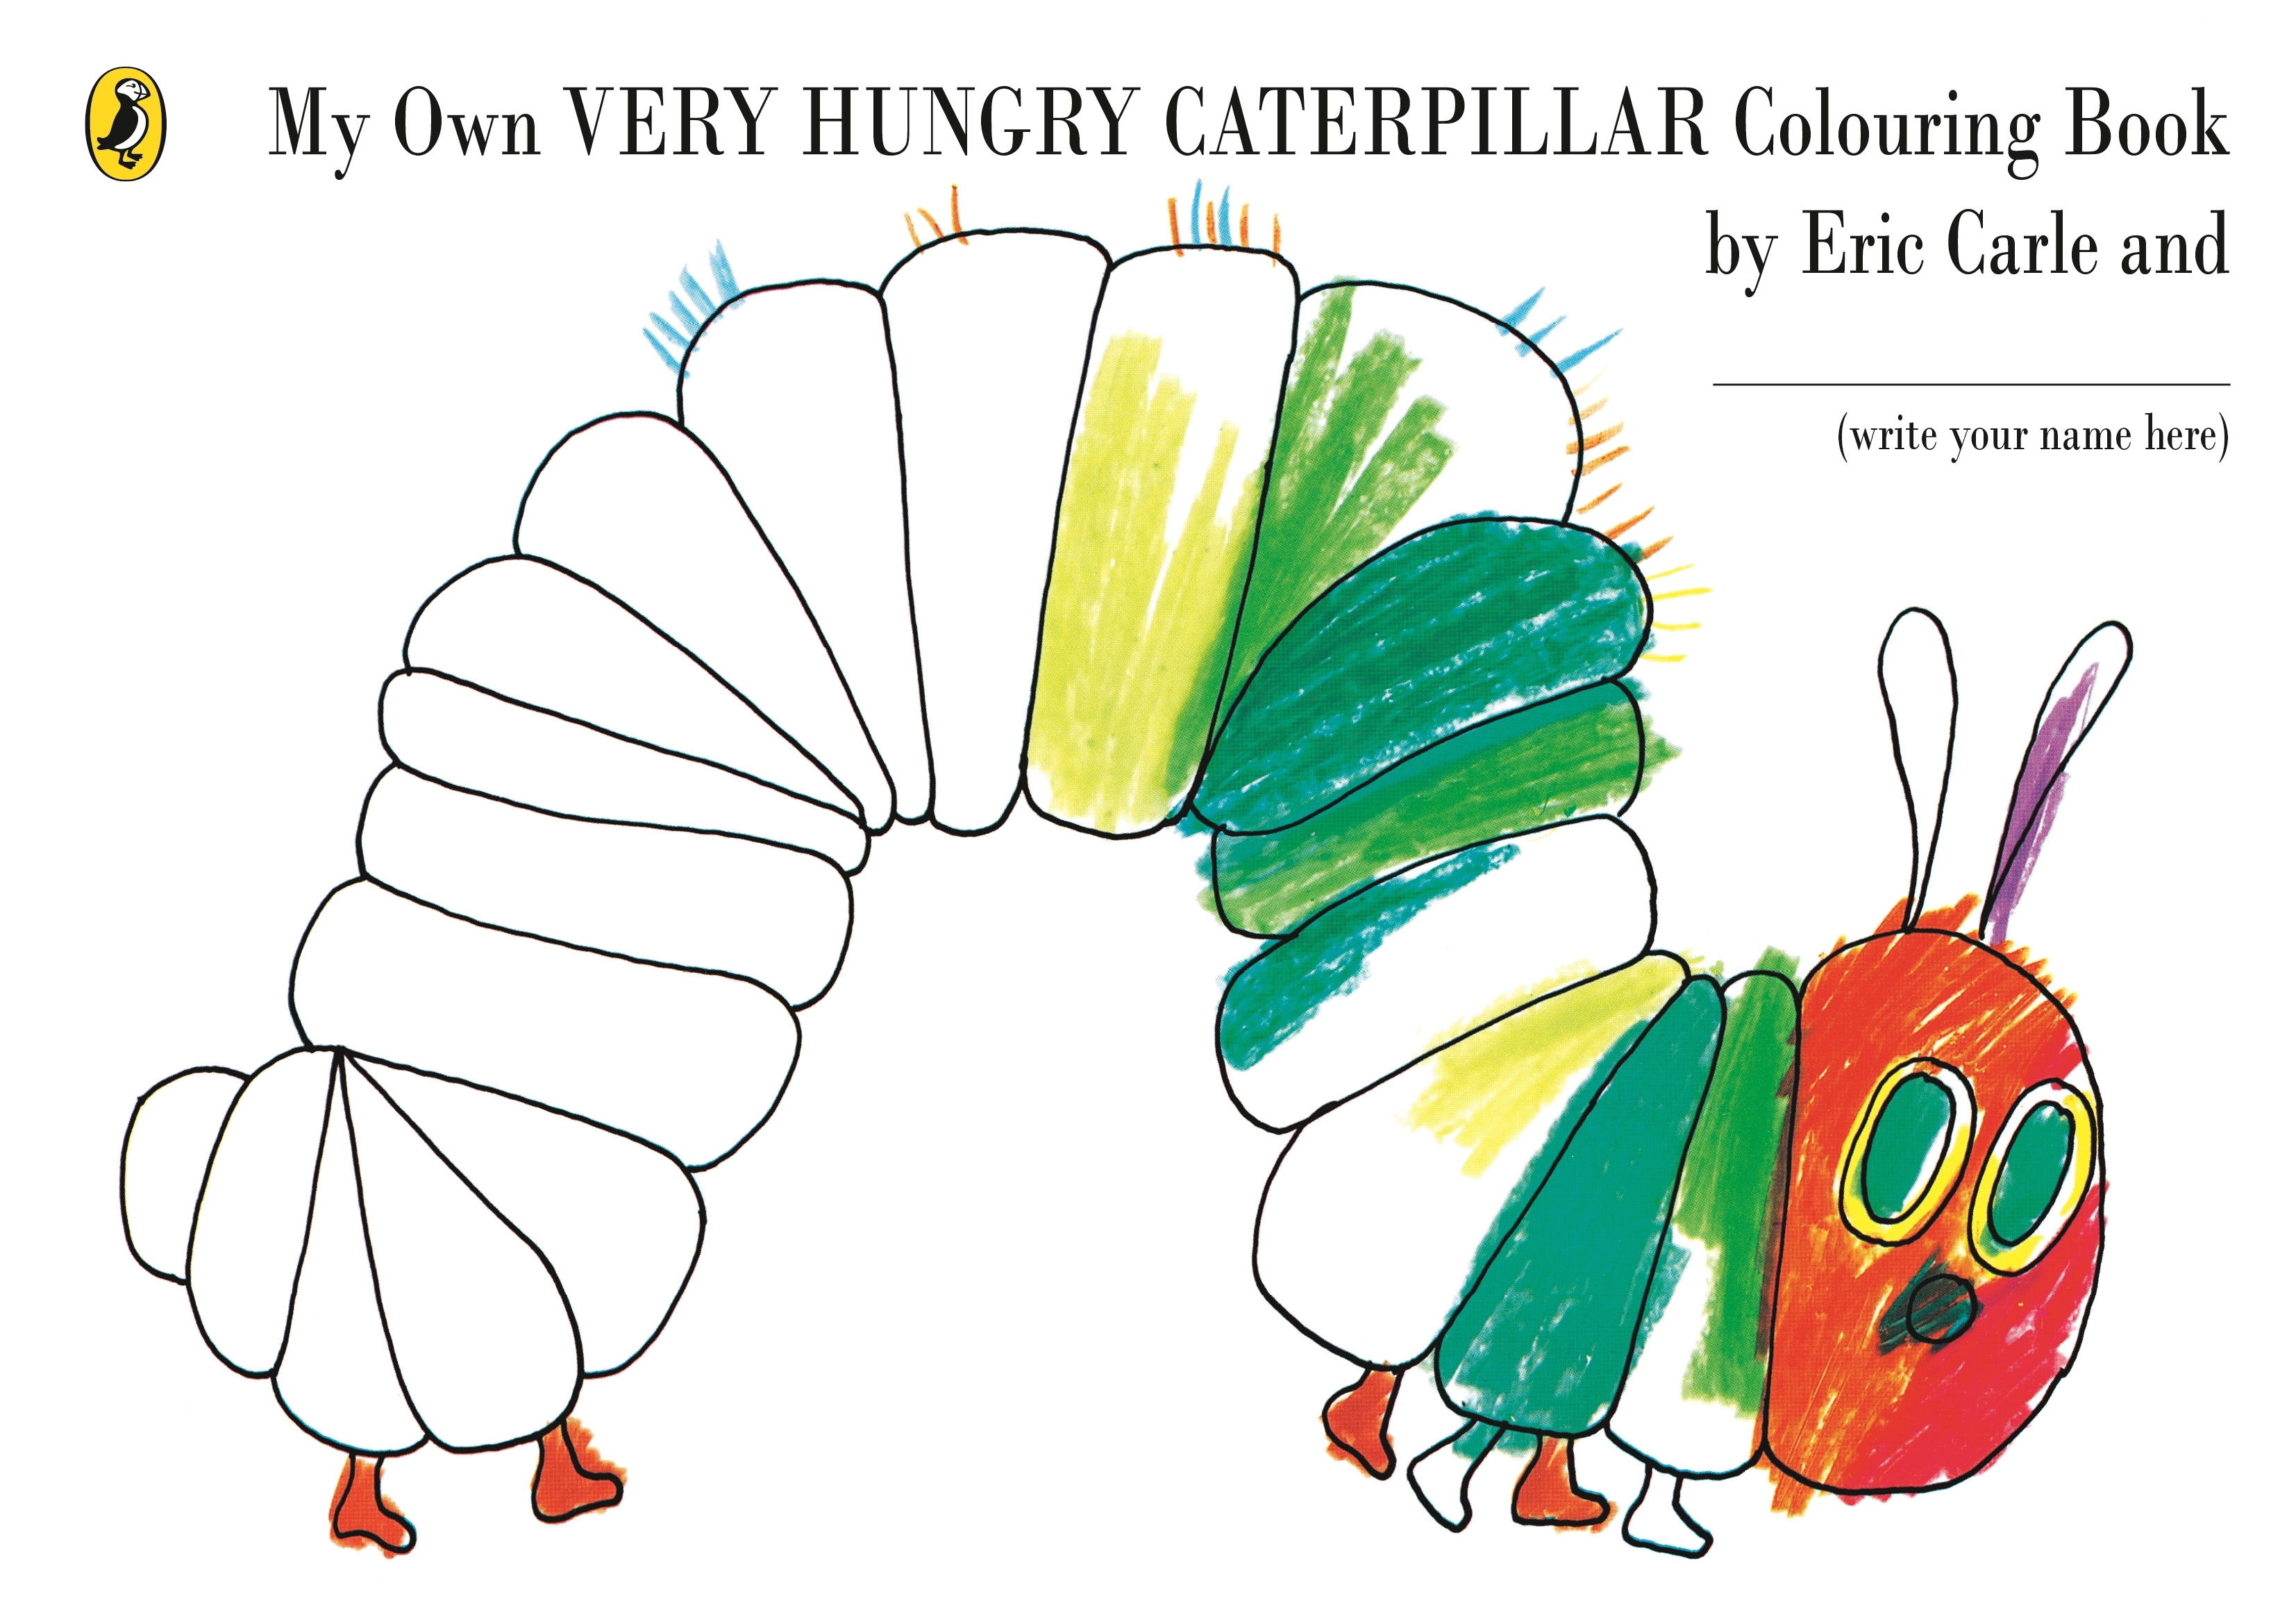 My Own Very Hungry Caterpillar Colouring Book Penguin